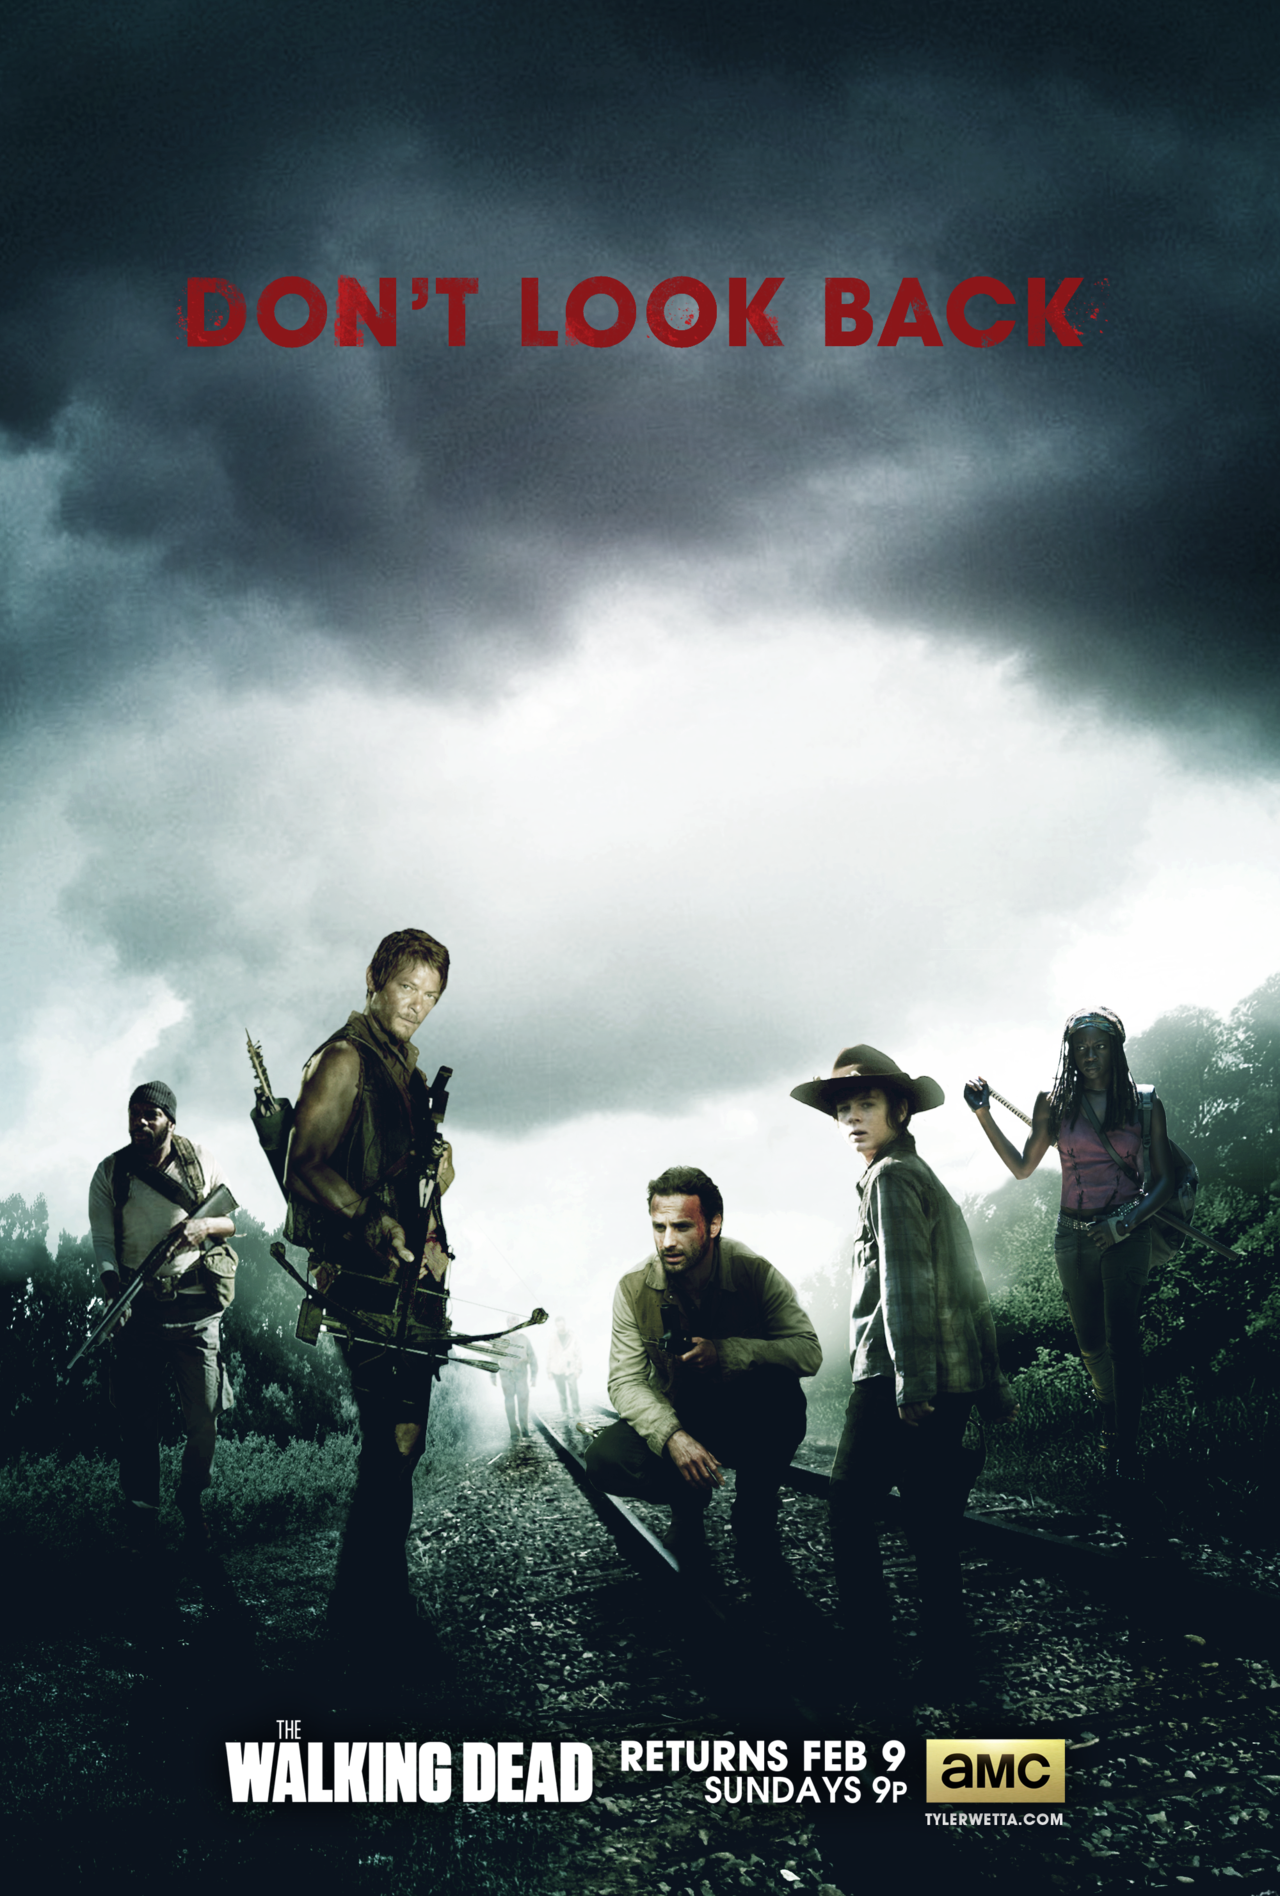 The Walking Dead Poster Season 4 By Ancoradesign On Deviantart The Walking Dead Poster The Walking Dead The Walking Dead Tv